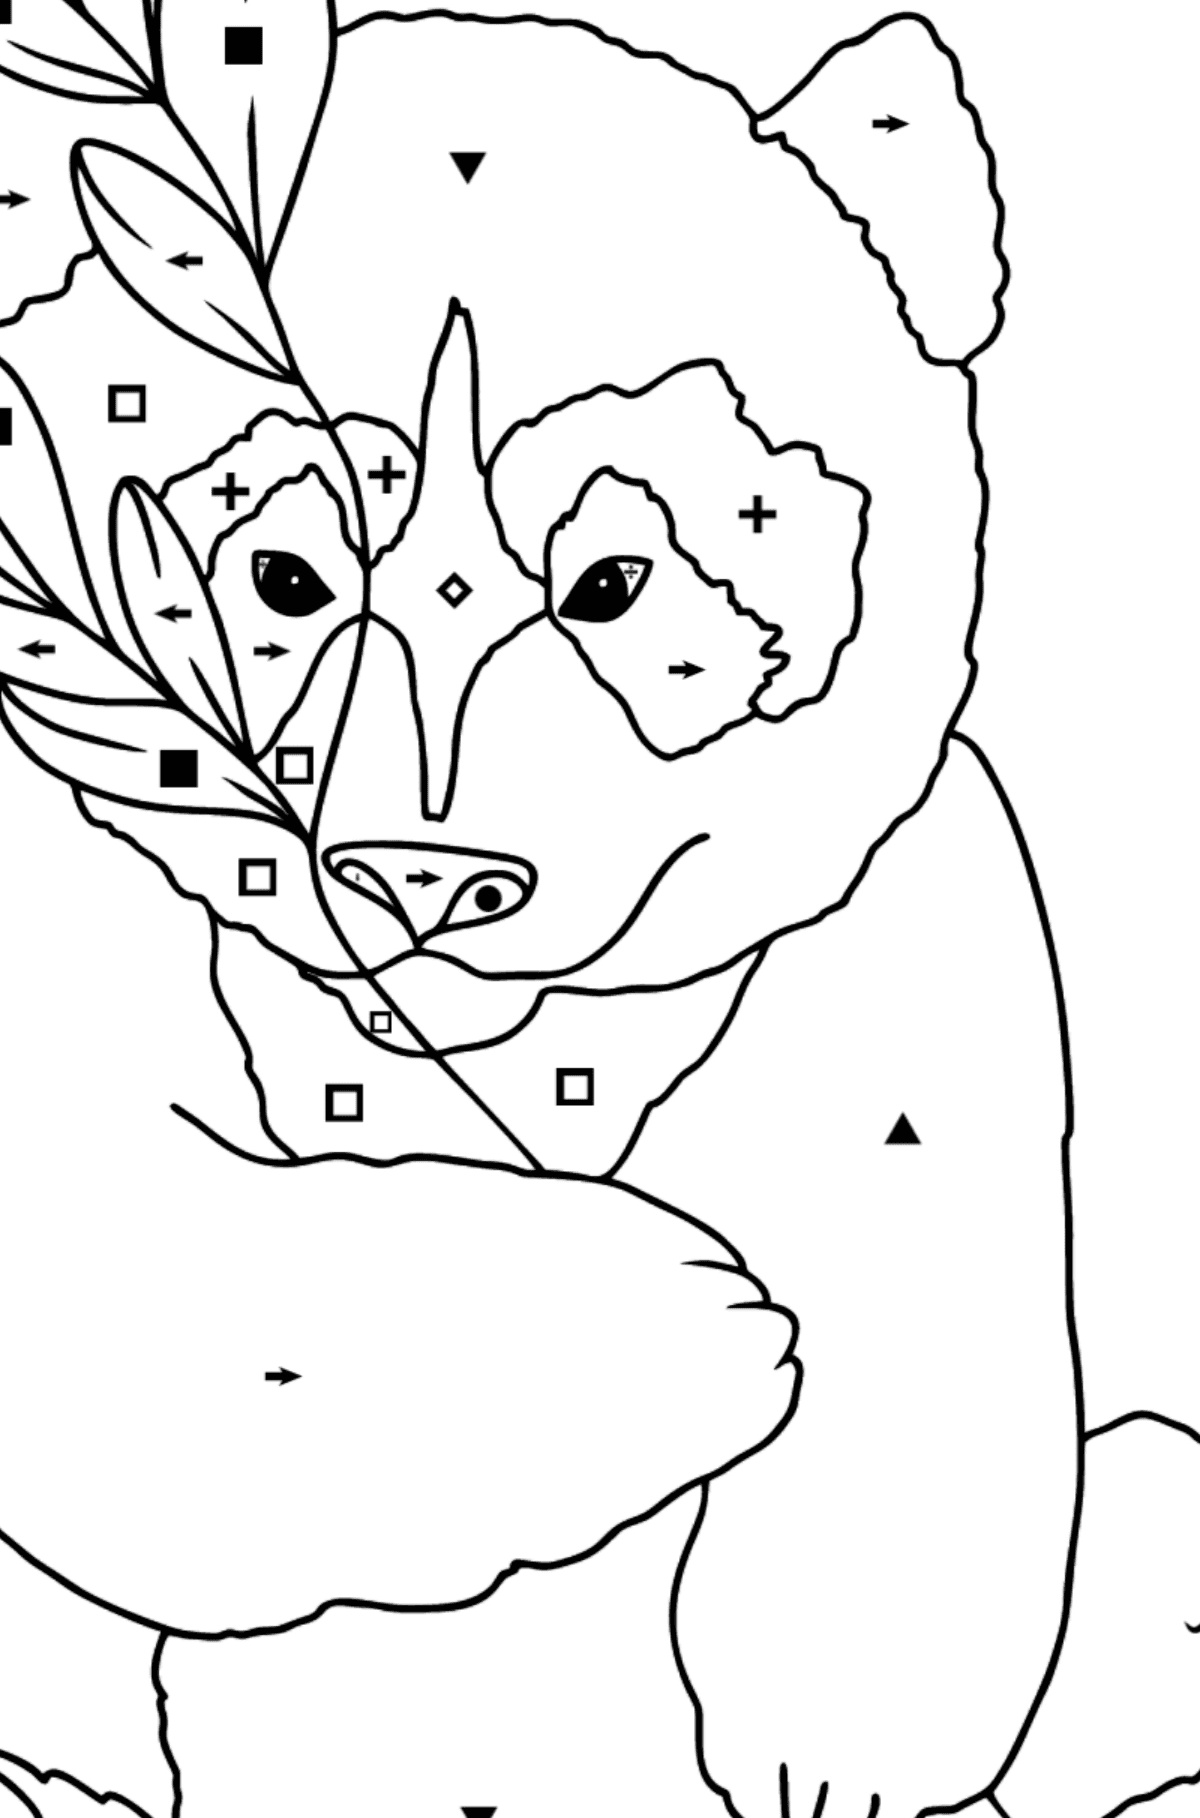 Coloring Page - A Panda is Having a Rest - Coloring by Symbols for Kids